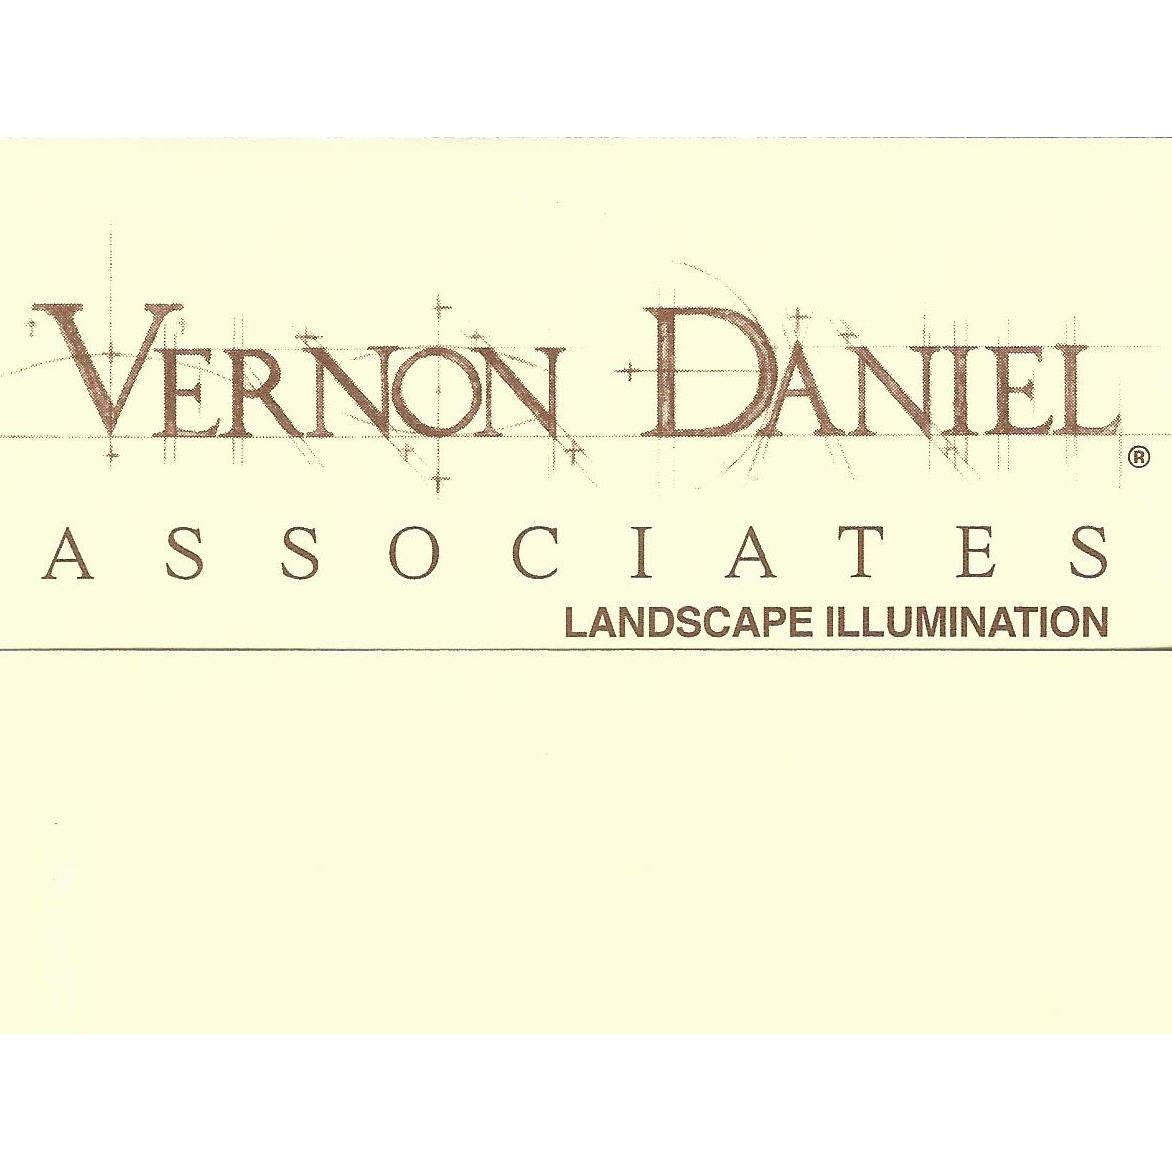 image of Vernon Daniel Associates Landscape Illumination